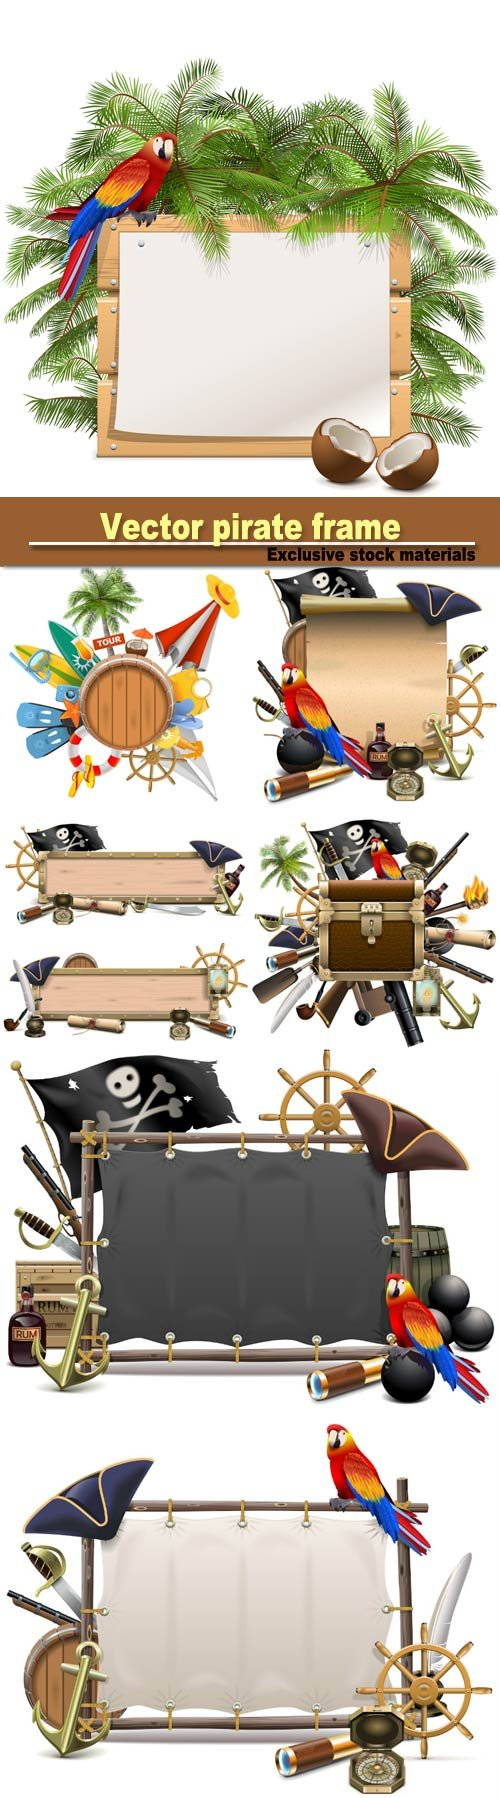 Vector pirate frame, treasure hunt  and beach concept